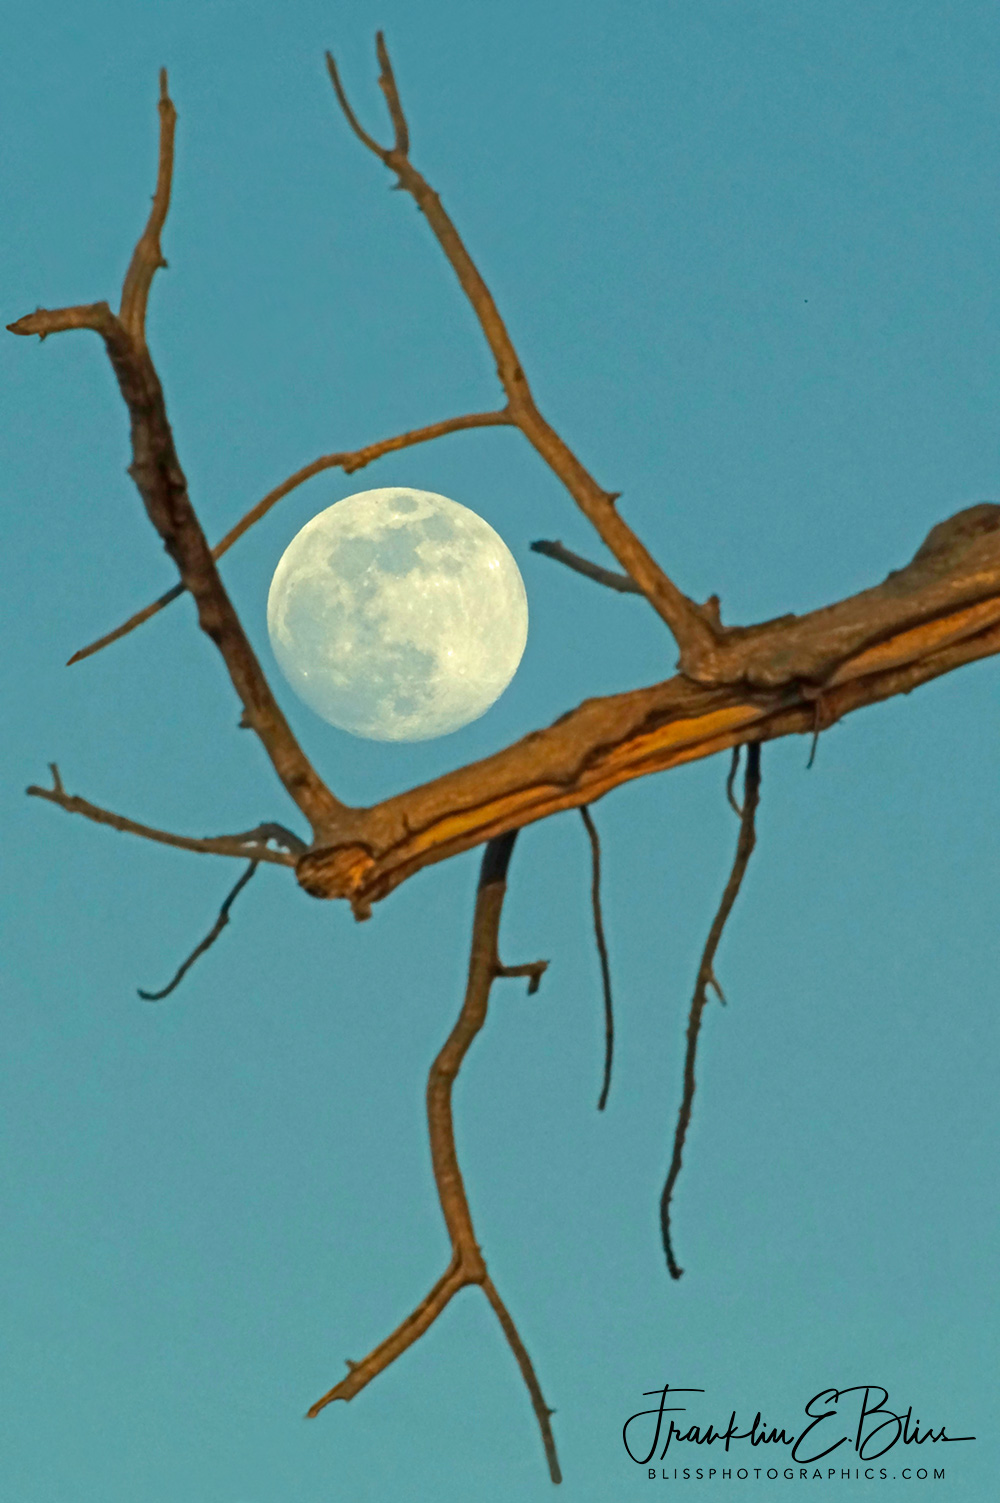 An Ent Trying to Catch the Moon